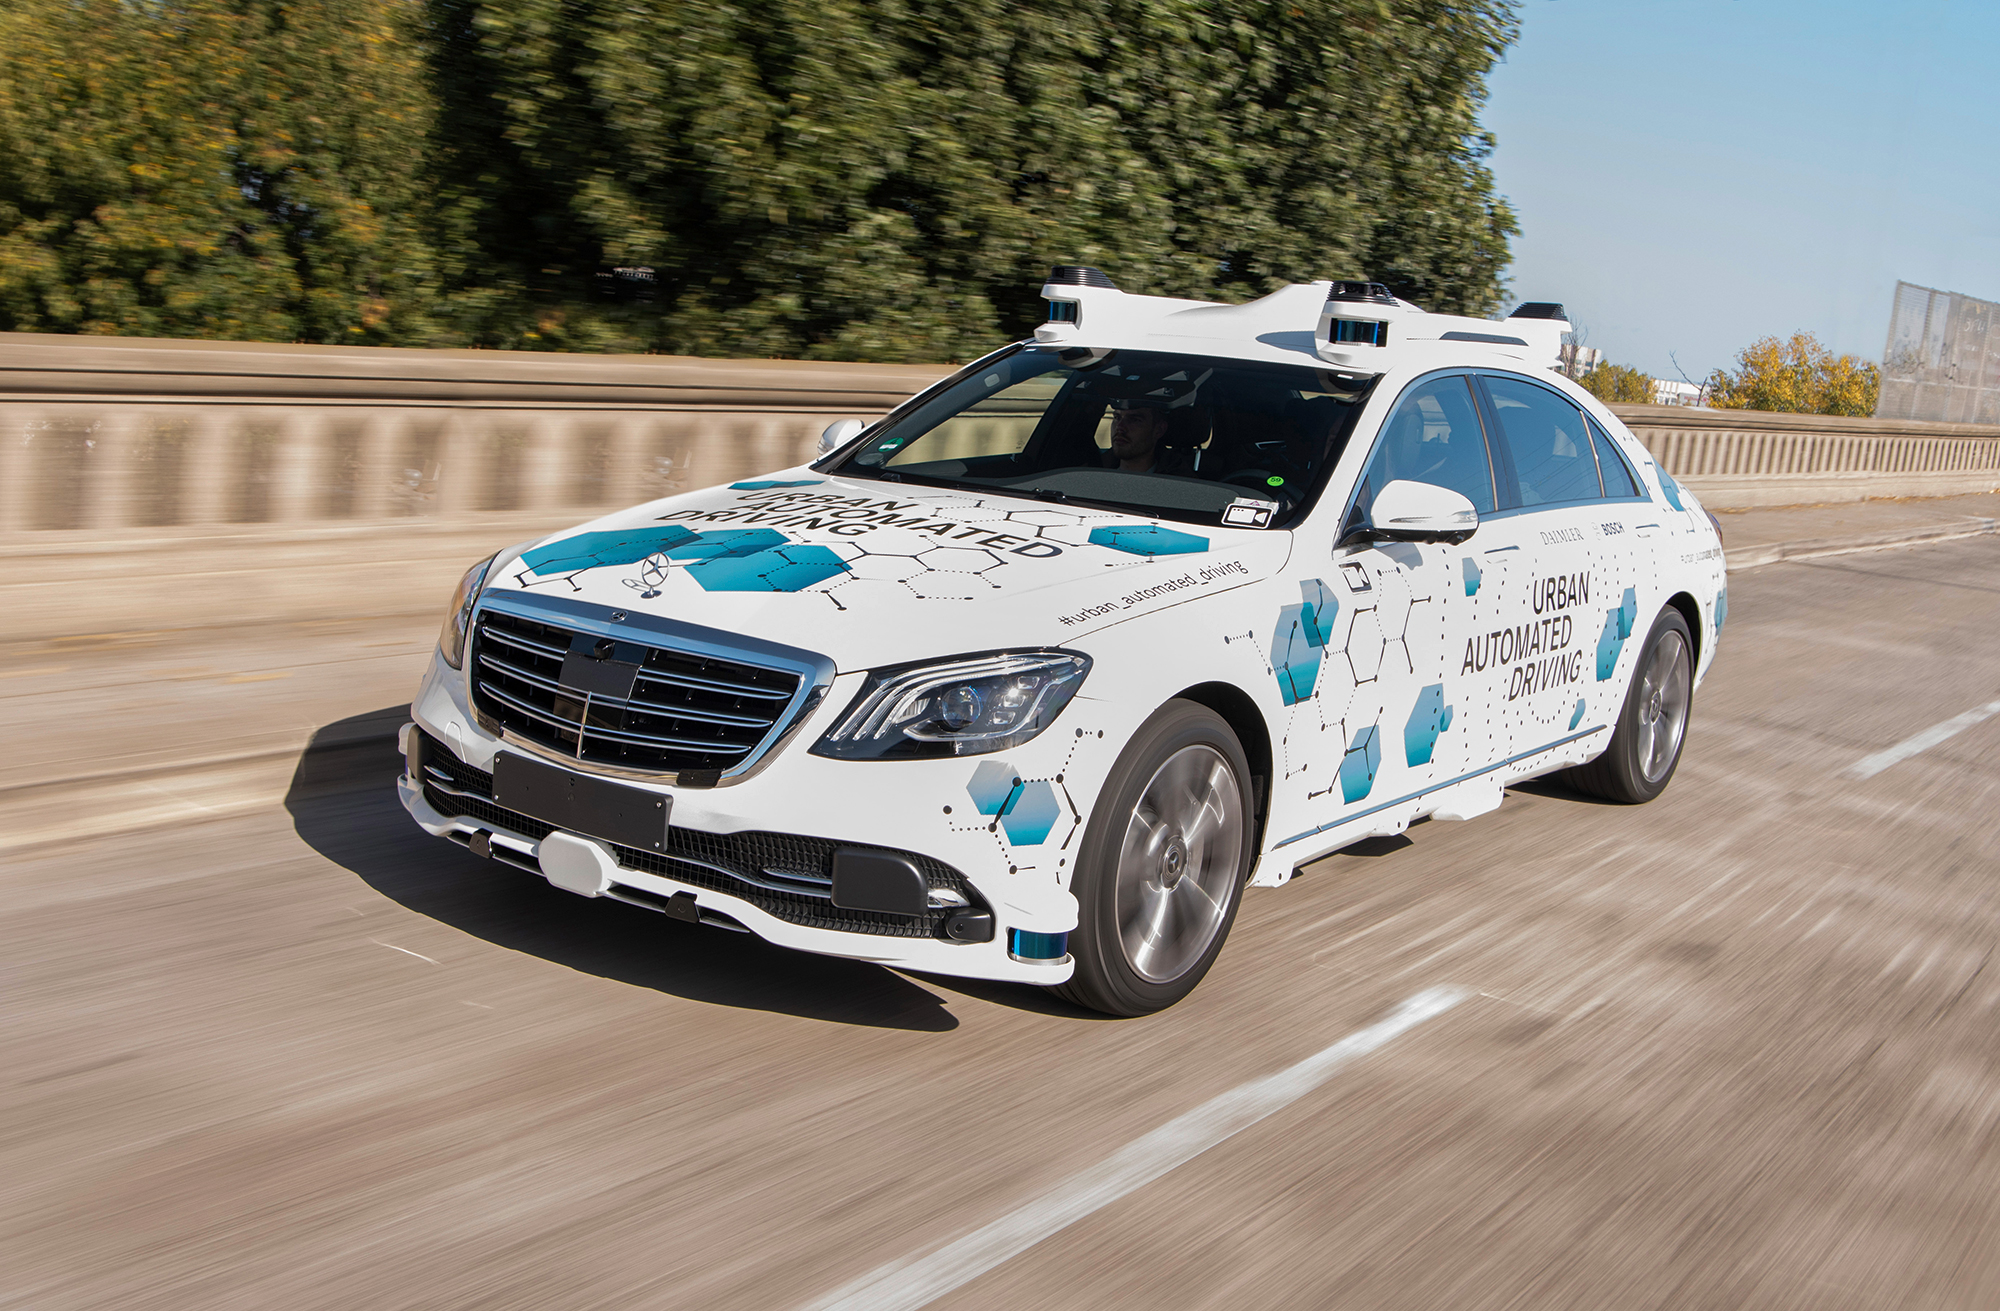 mercedes_benz_urban_automated_driving_.jpg